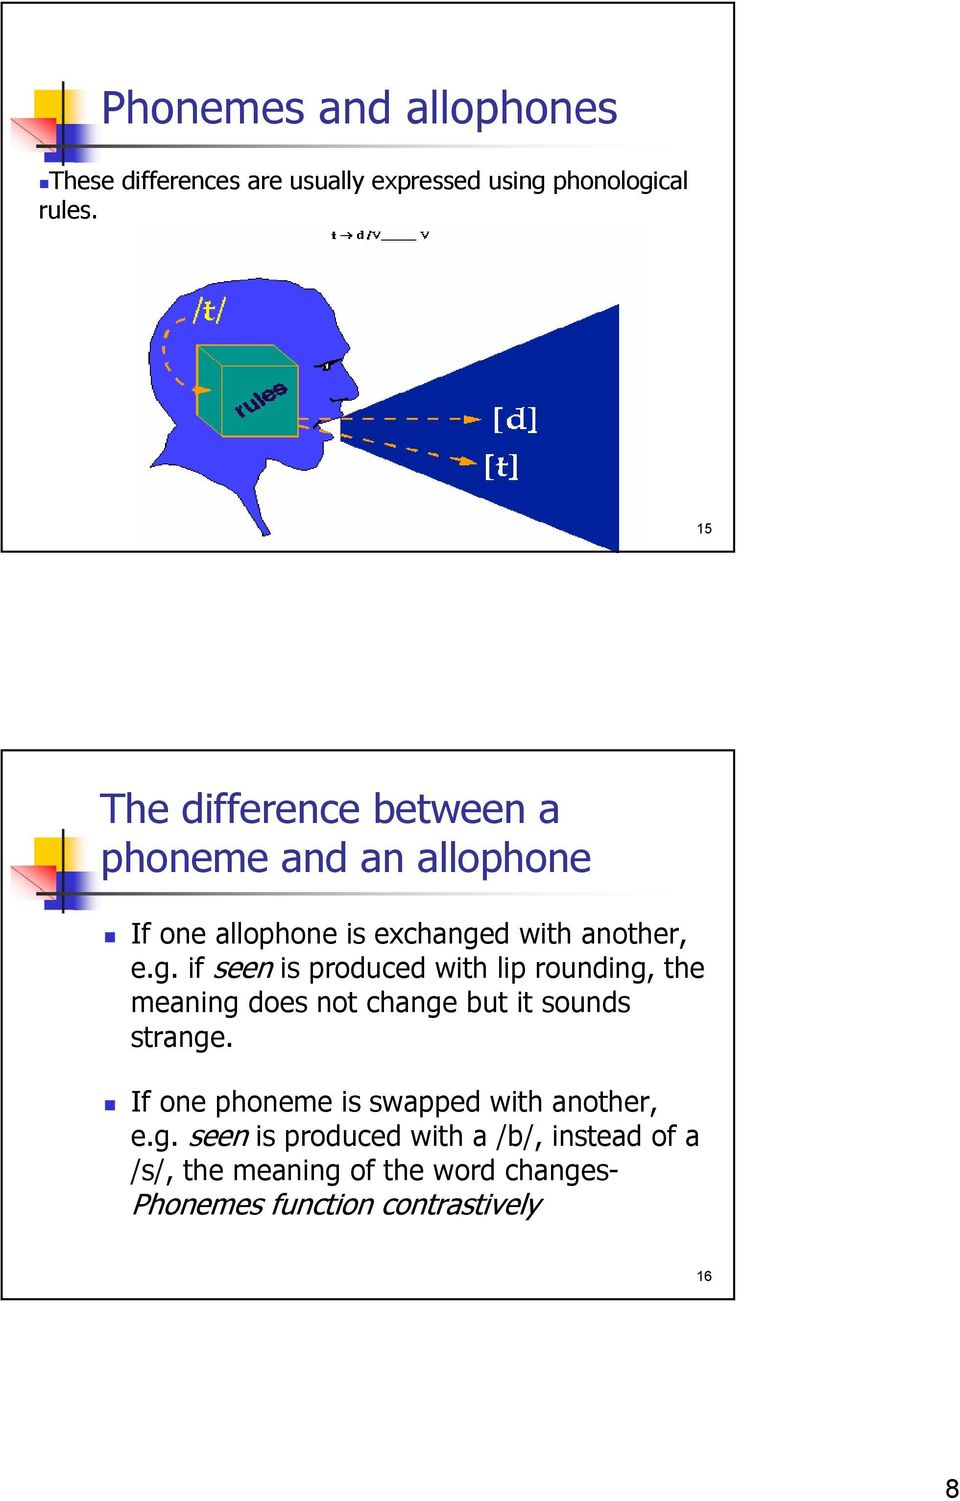 d with another, e.g. if seen is produced with lip rounding, the meaning does not change but it sounds strange.